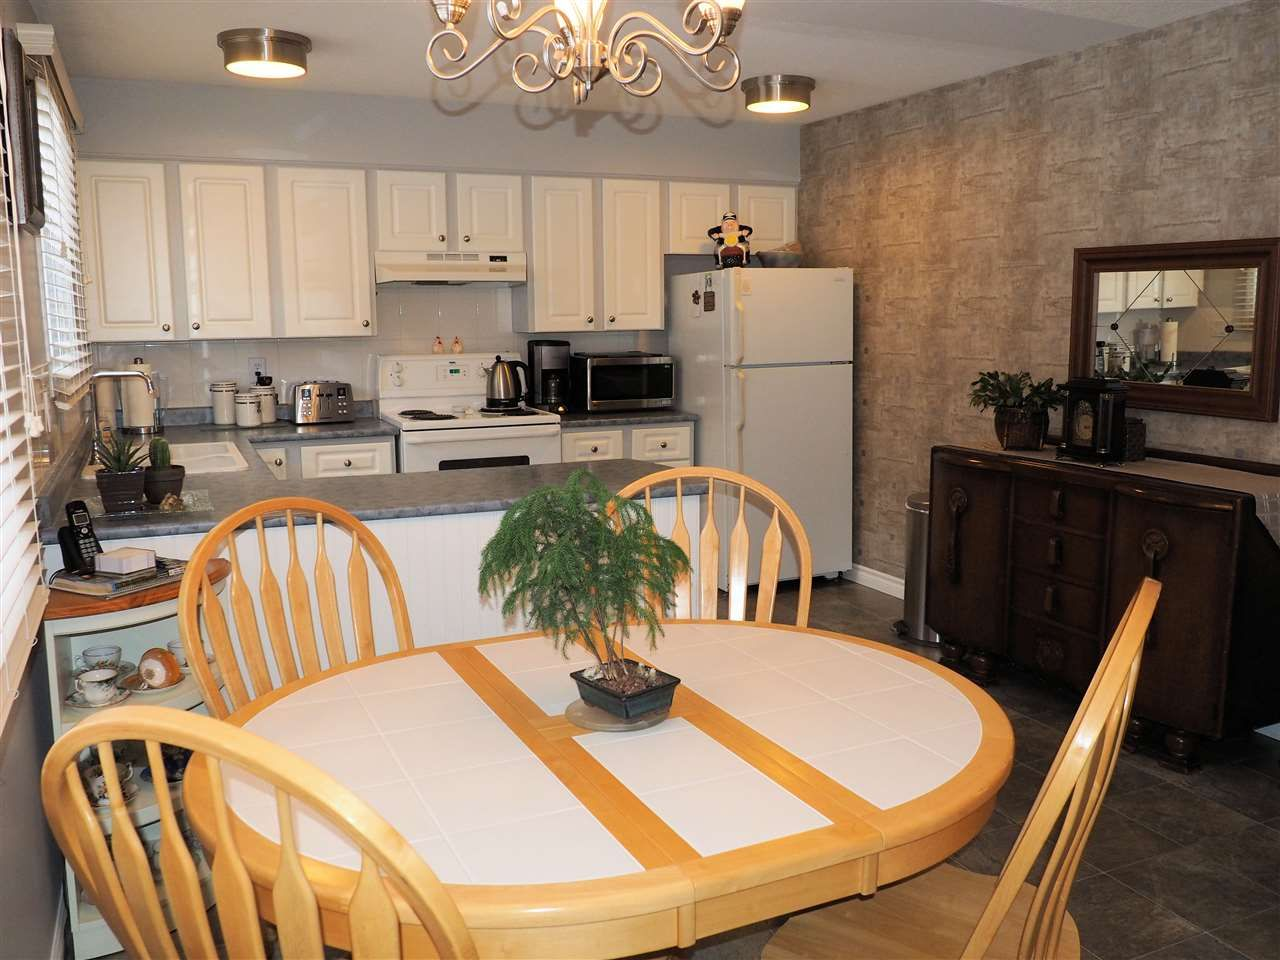 Photo 5: Photos: 4645 ROBSON Avenue in Prince George: Foothills House for sale (PG City West (Zone 71))  : MLS®# R2143048